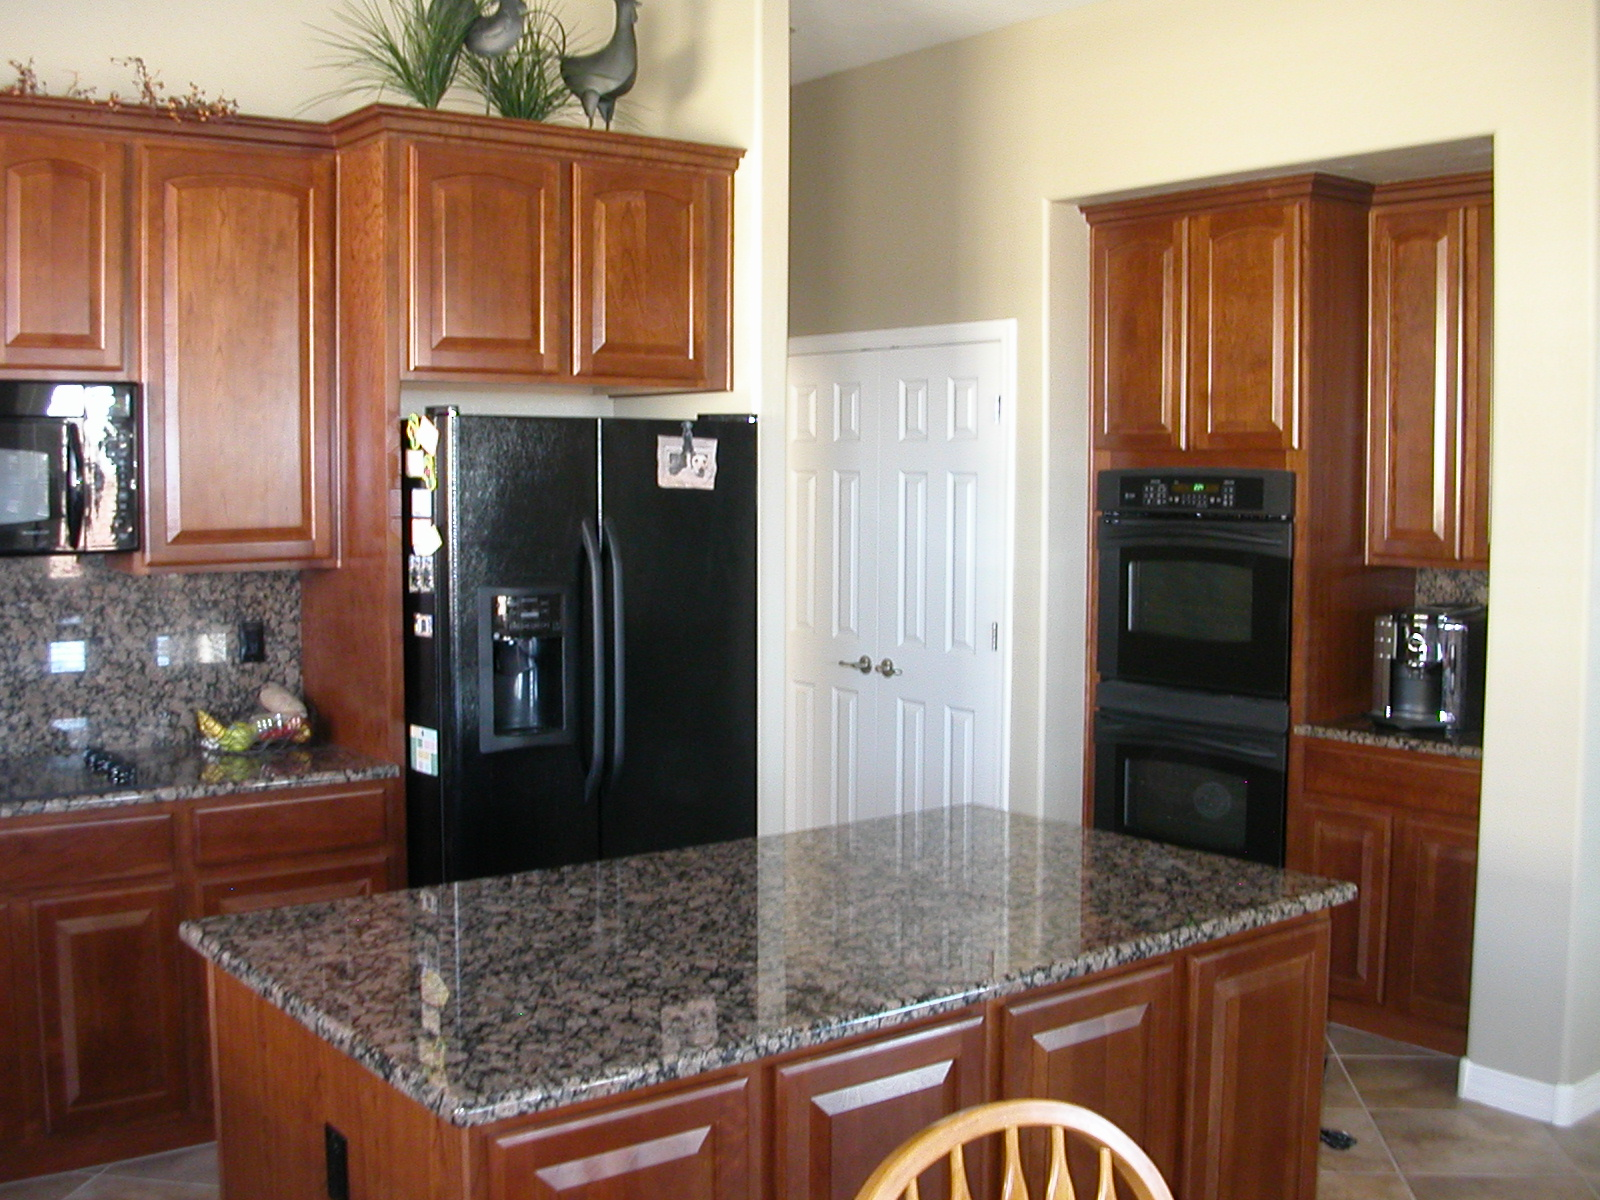 Kitchen appliances black kitchen appliances for Kitchen ideas with black appliances